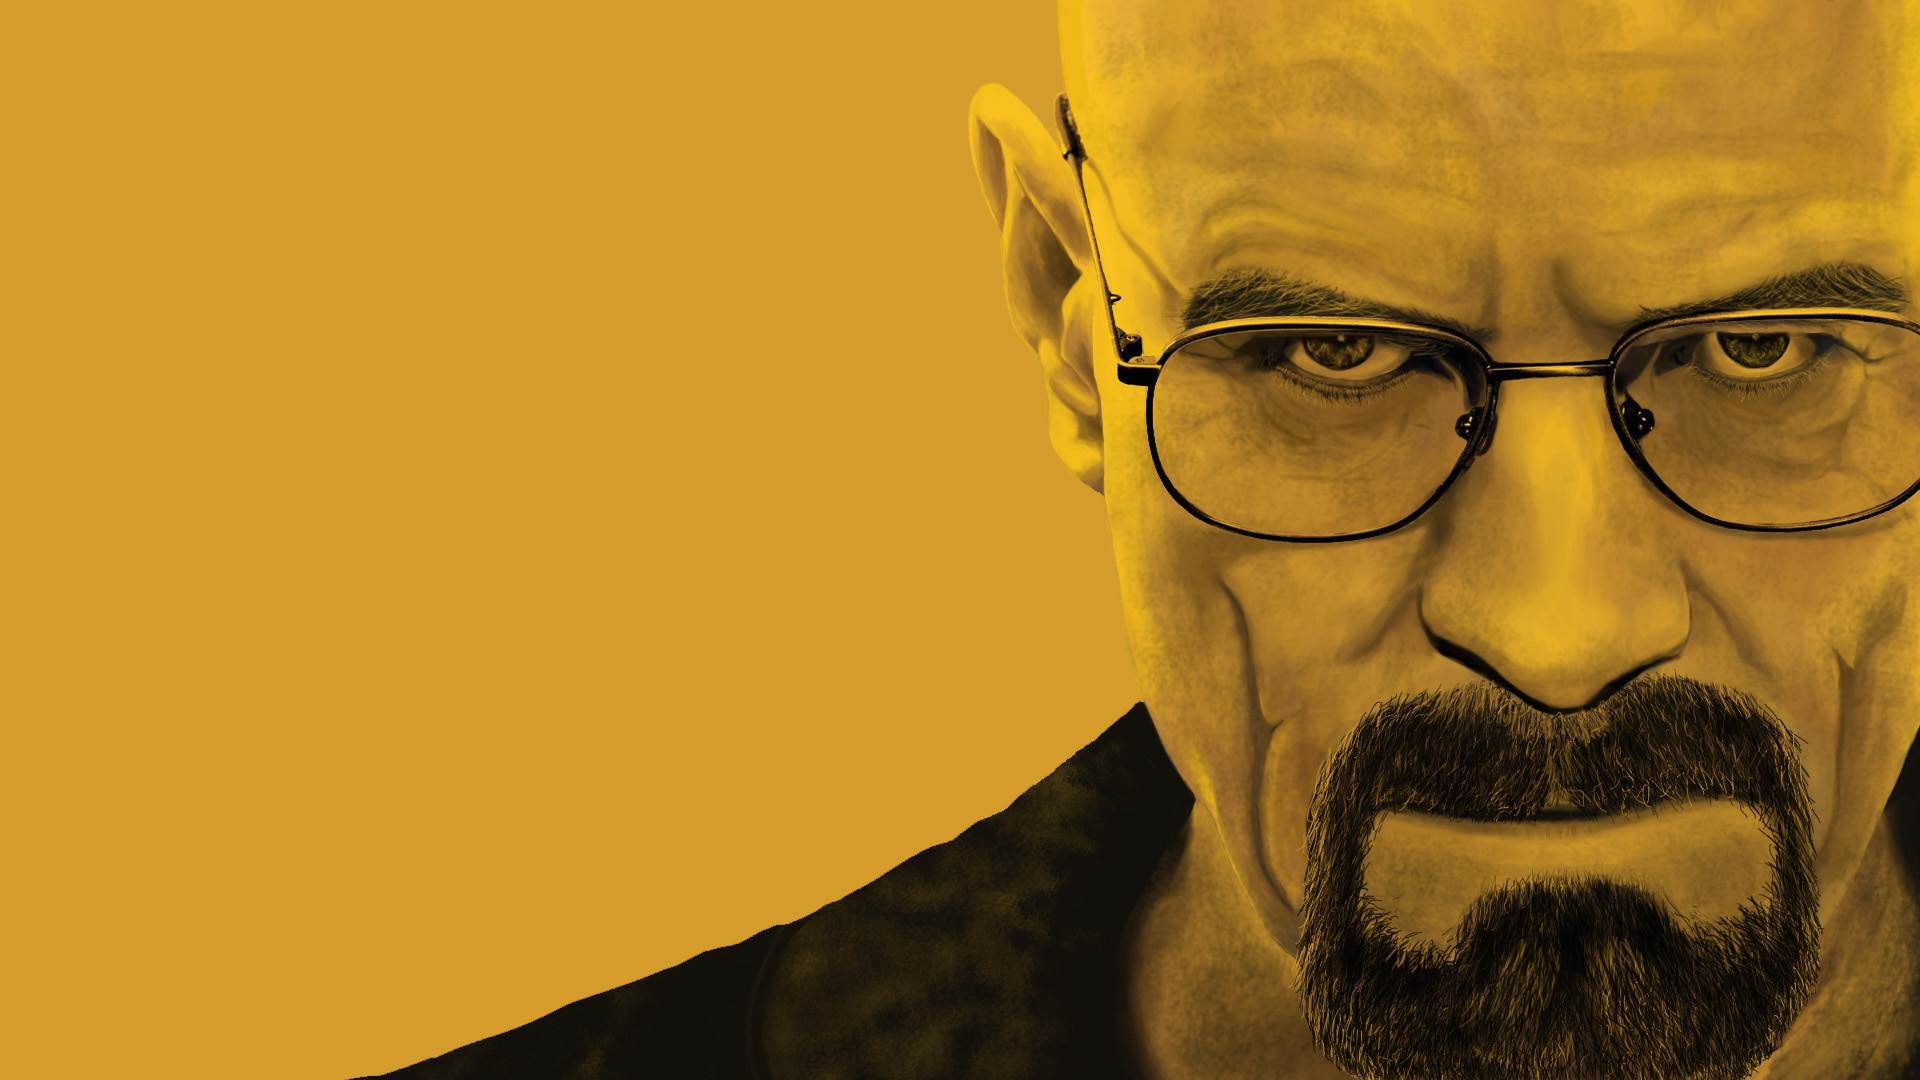 1920x1080 Download free breaking bad wallpapers for your mobile phone by 1920×1080 Breaking  Bad Wallpapers